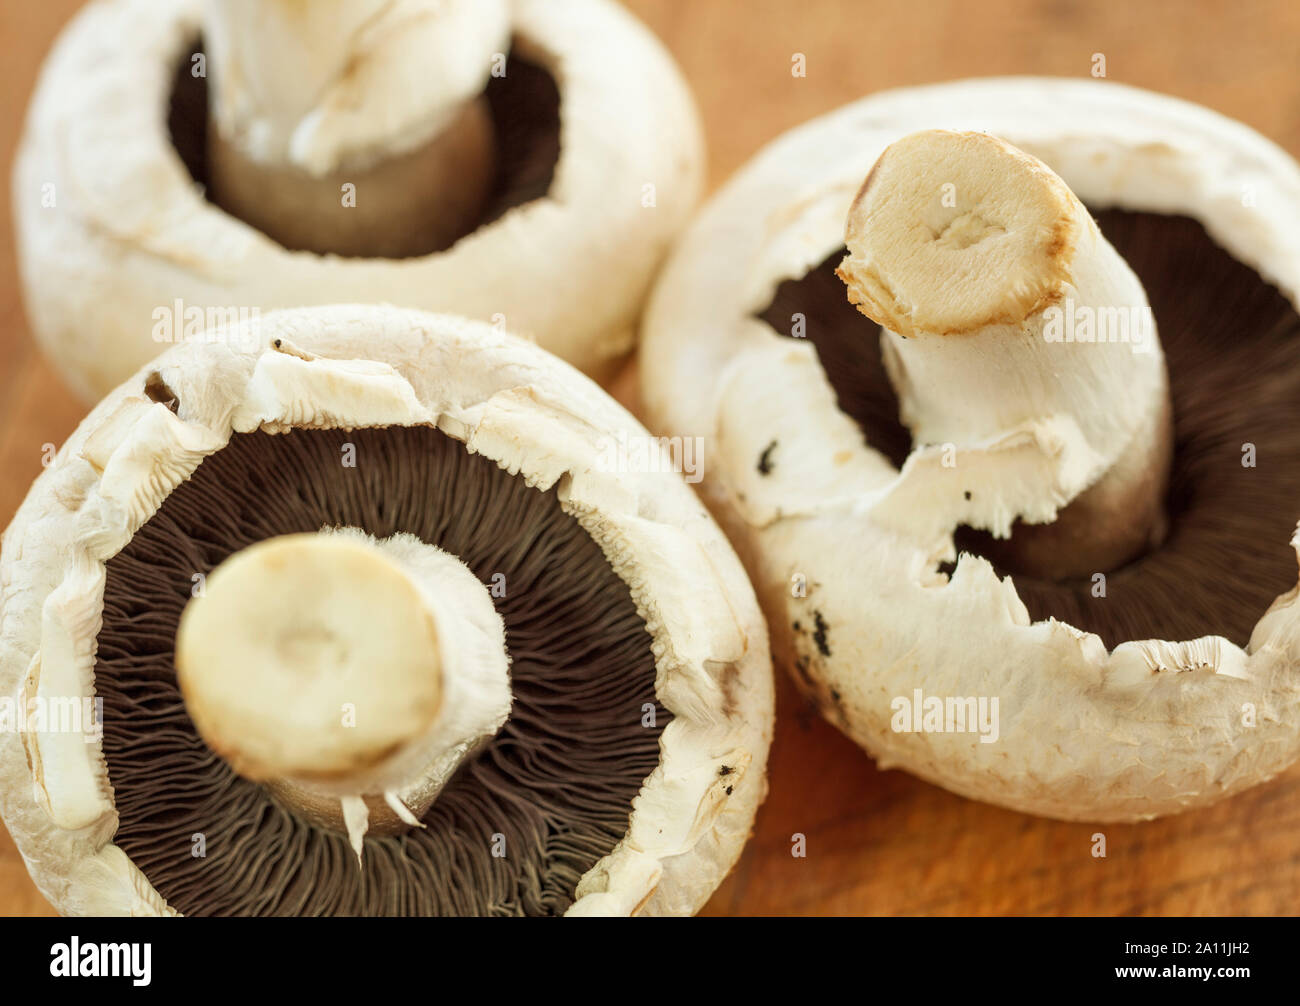 Mushrooms close up on a wooden surface Stock Photo